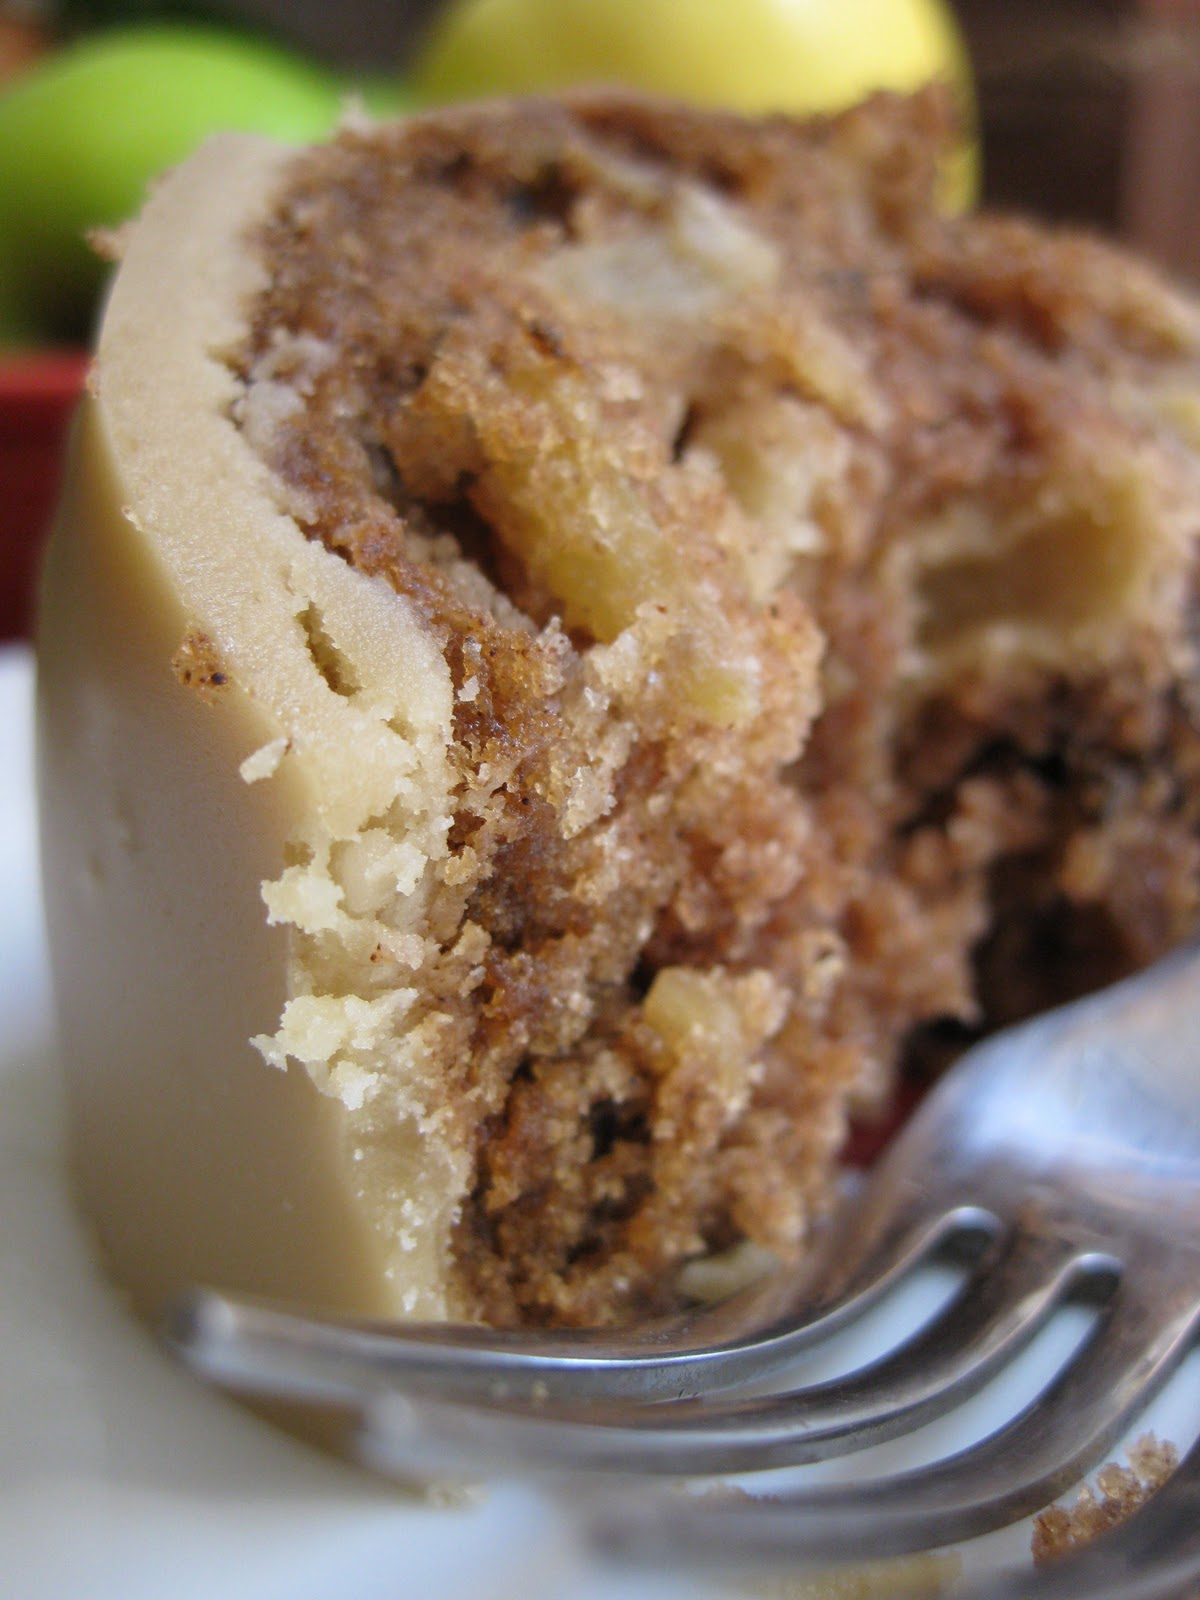 Sunday Treats: Apple Spice Cake